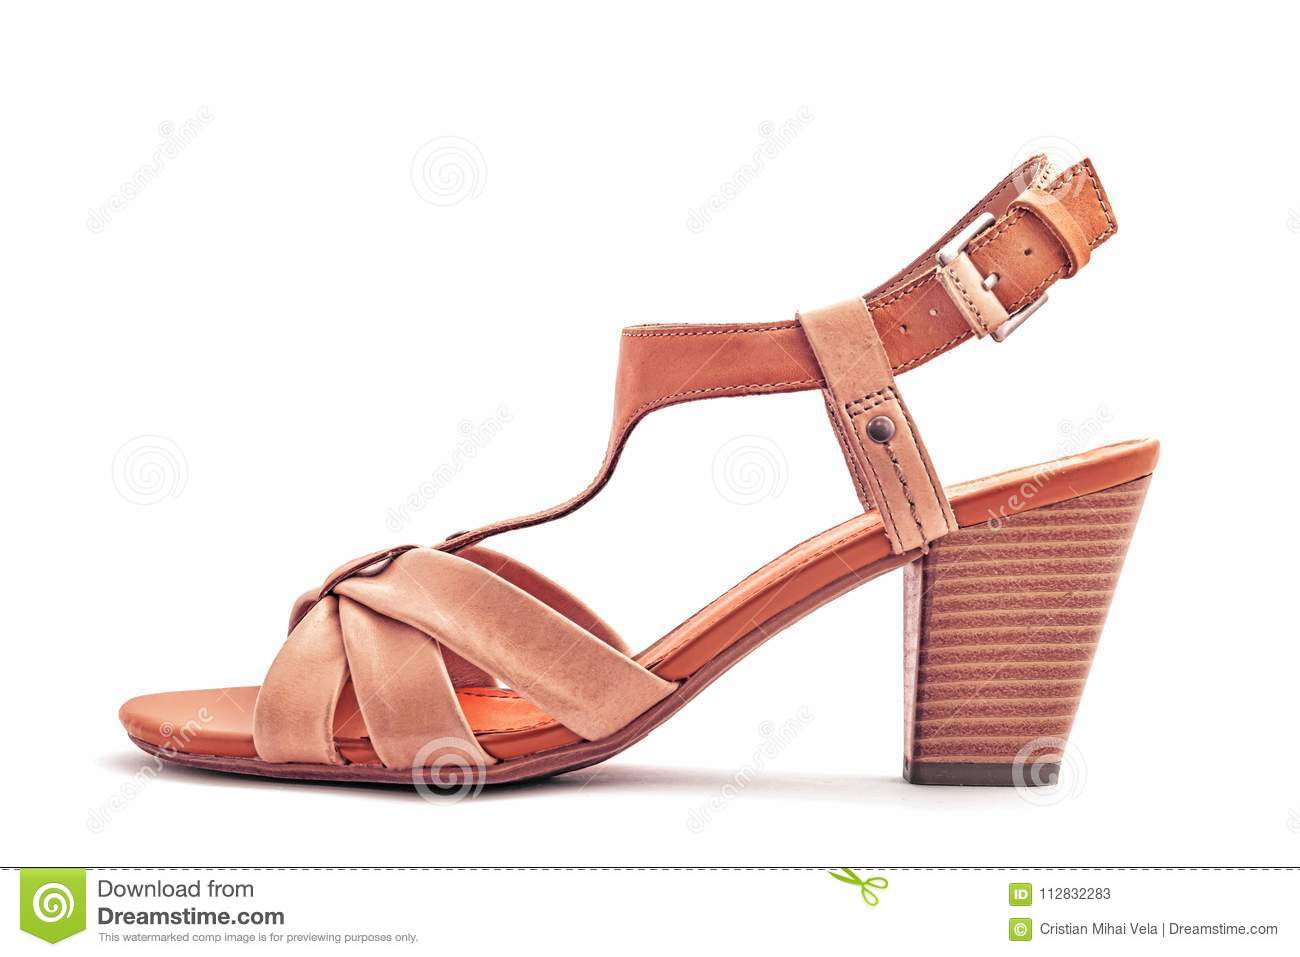 Download Women leather sandal stock image. Image of strap, accessory - 112832283